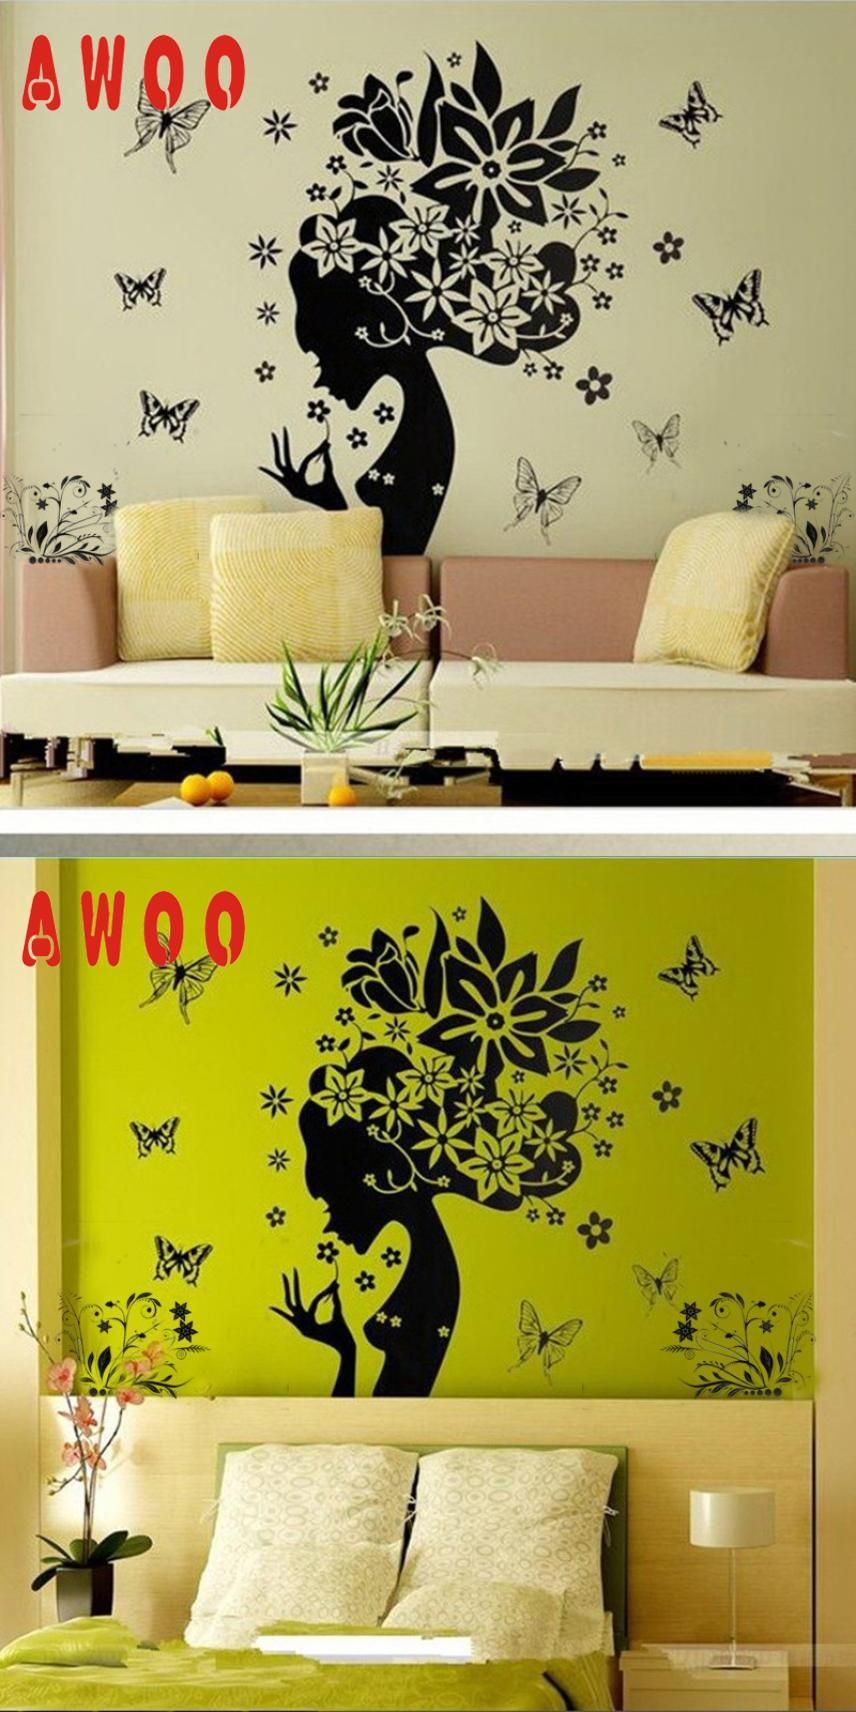 Visit to buy wall sticker pretty butterfly flower fairy girl